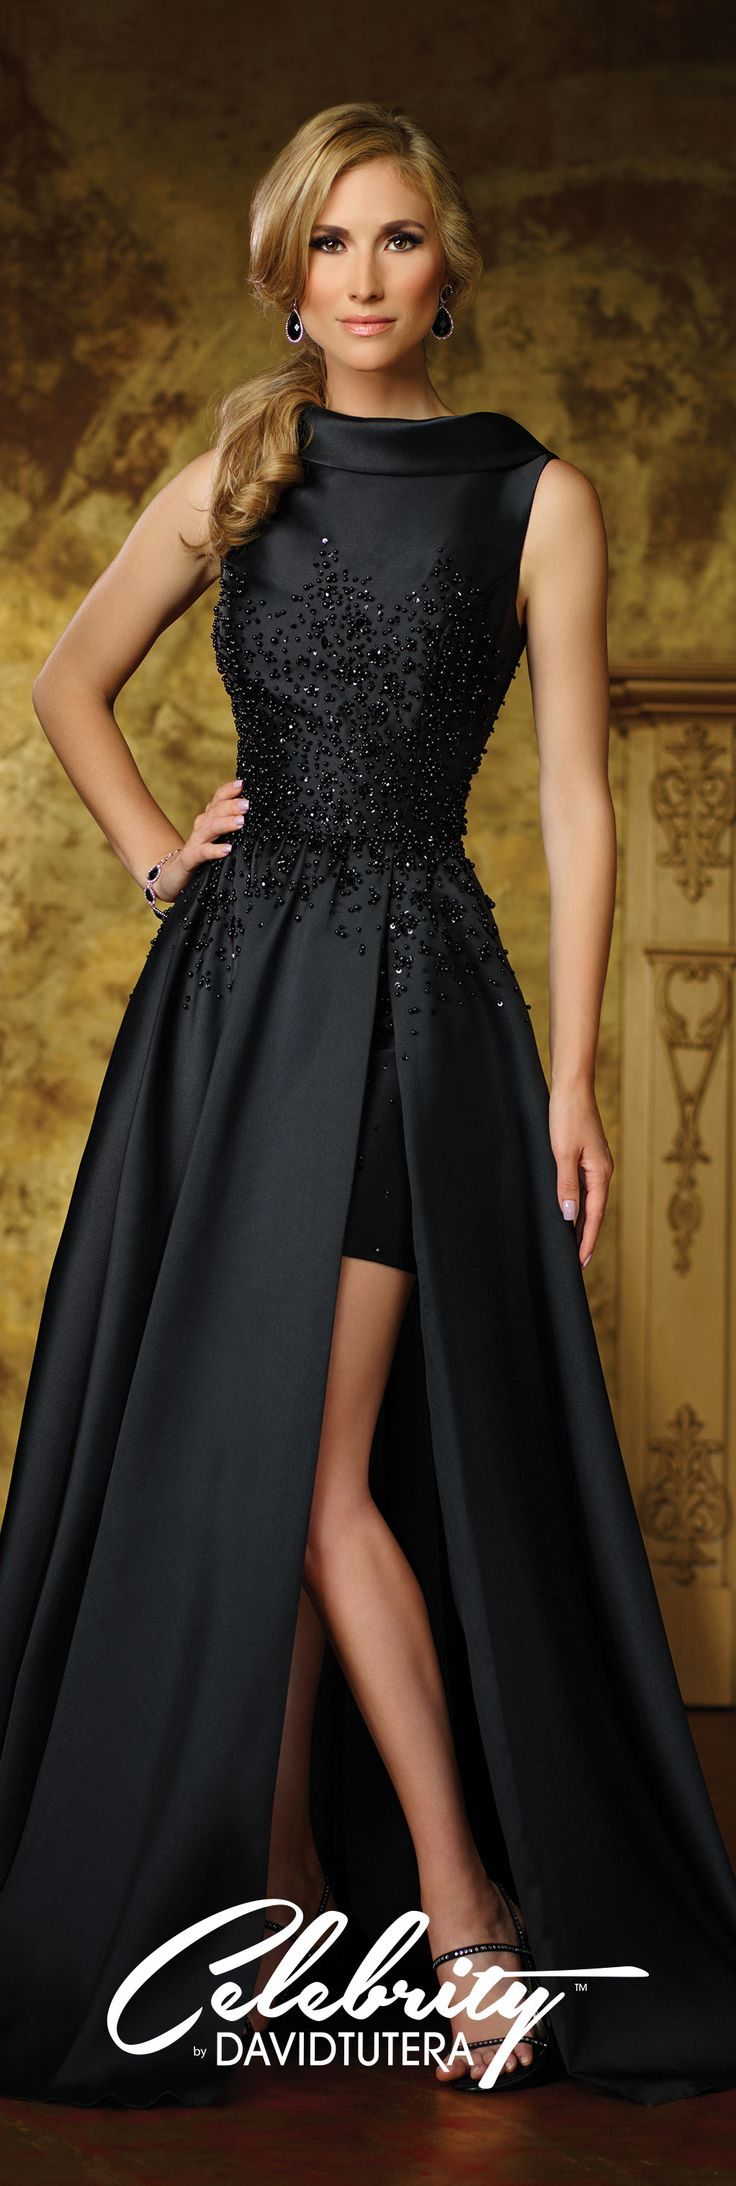 61 best Evening Wear That Will Turn Heads images on Pinterest ...